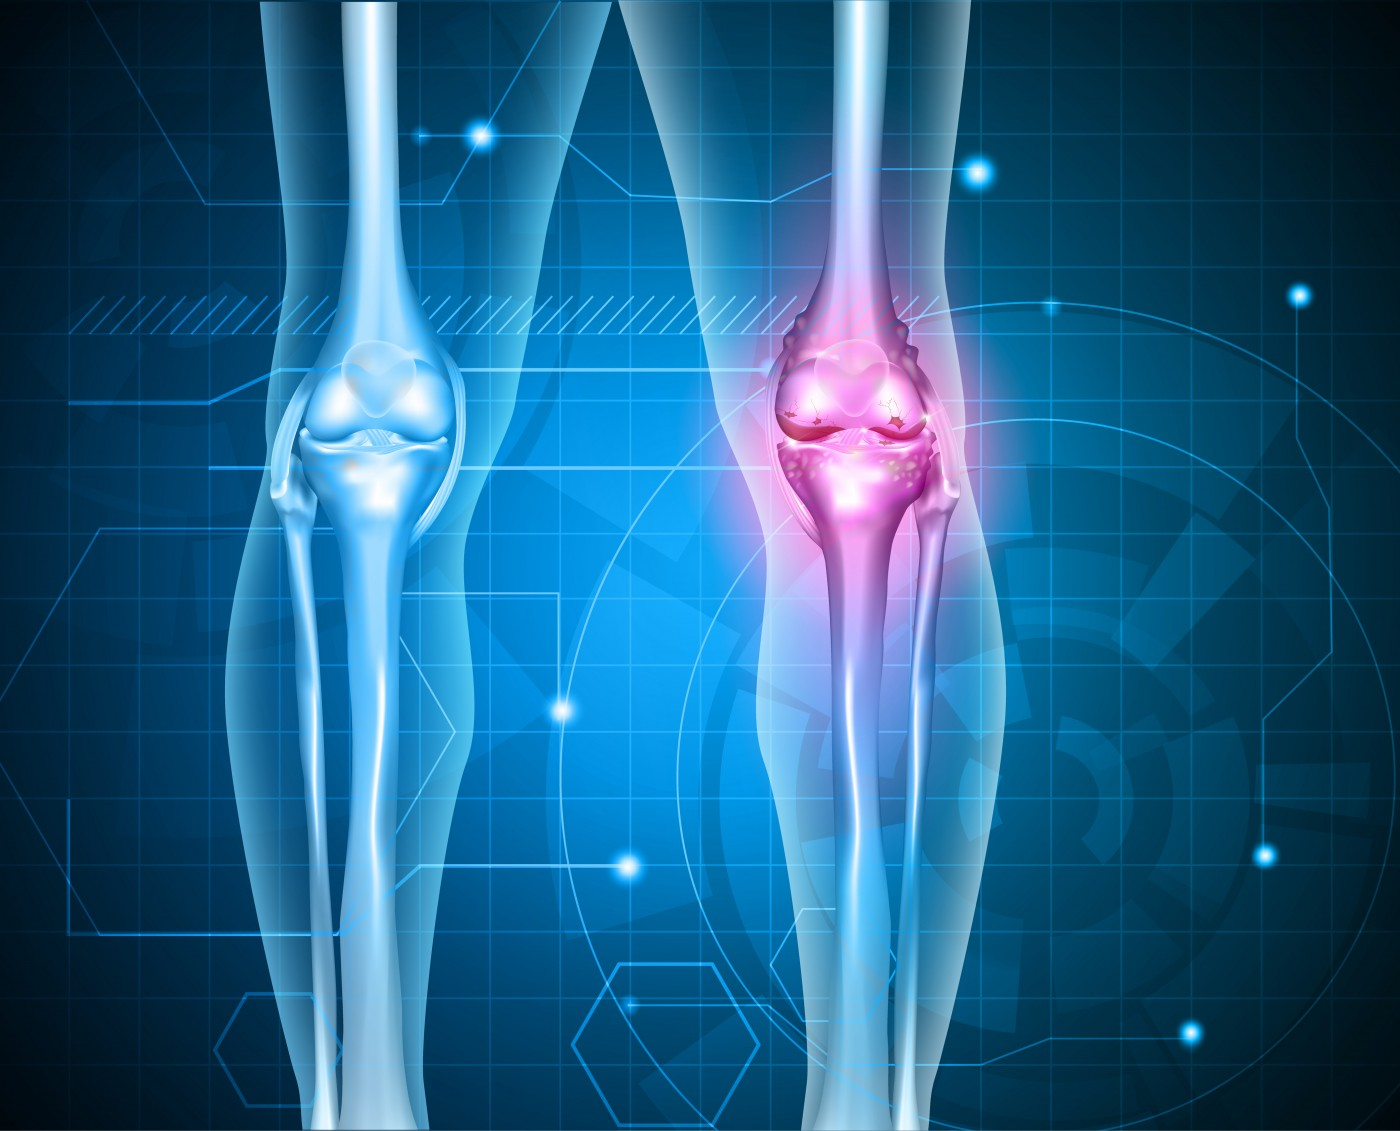 Potential Rheumatoid Arthritis Therapy Under FDA Review